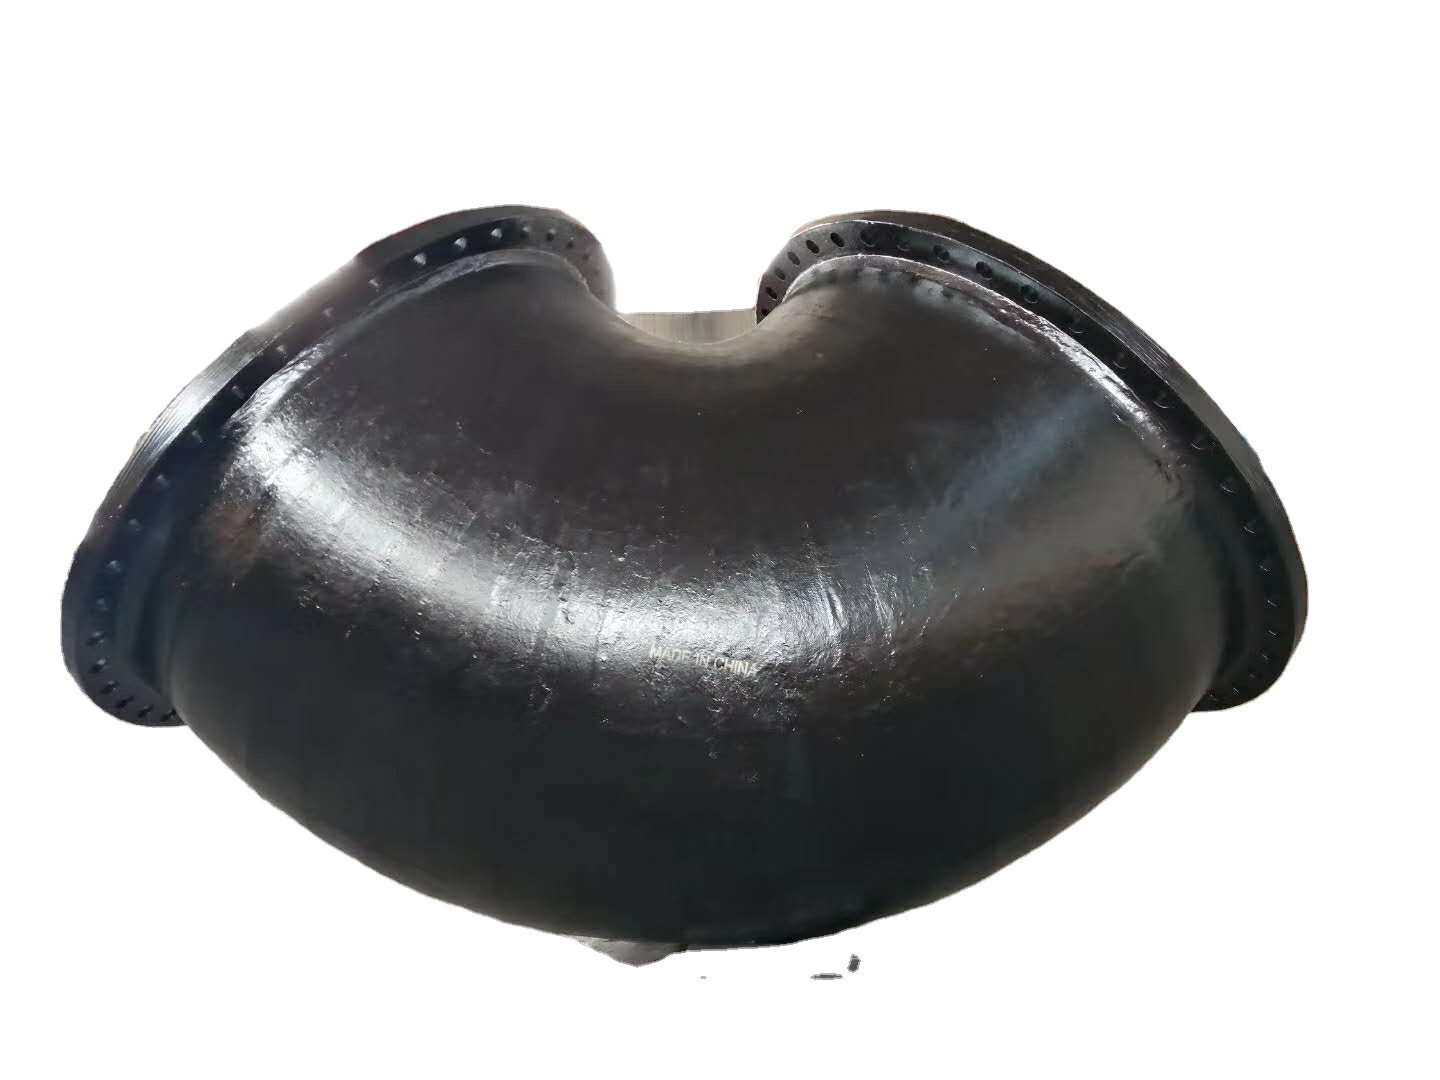 ISO 2531 elbow 90 degree DCI bend ductile iron pipe and fittings flanged